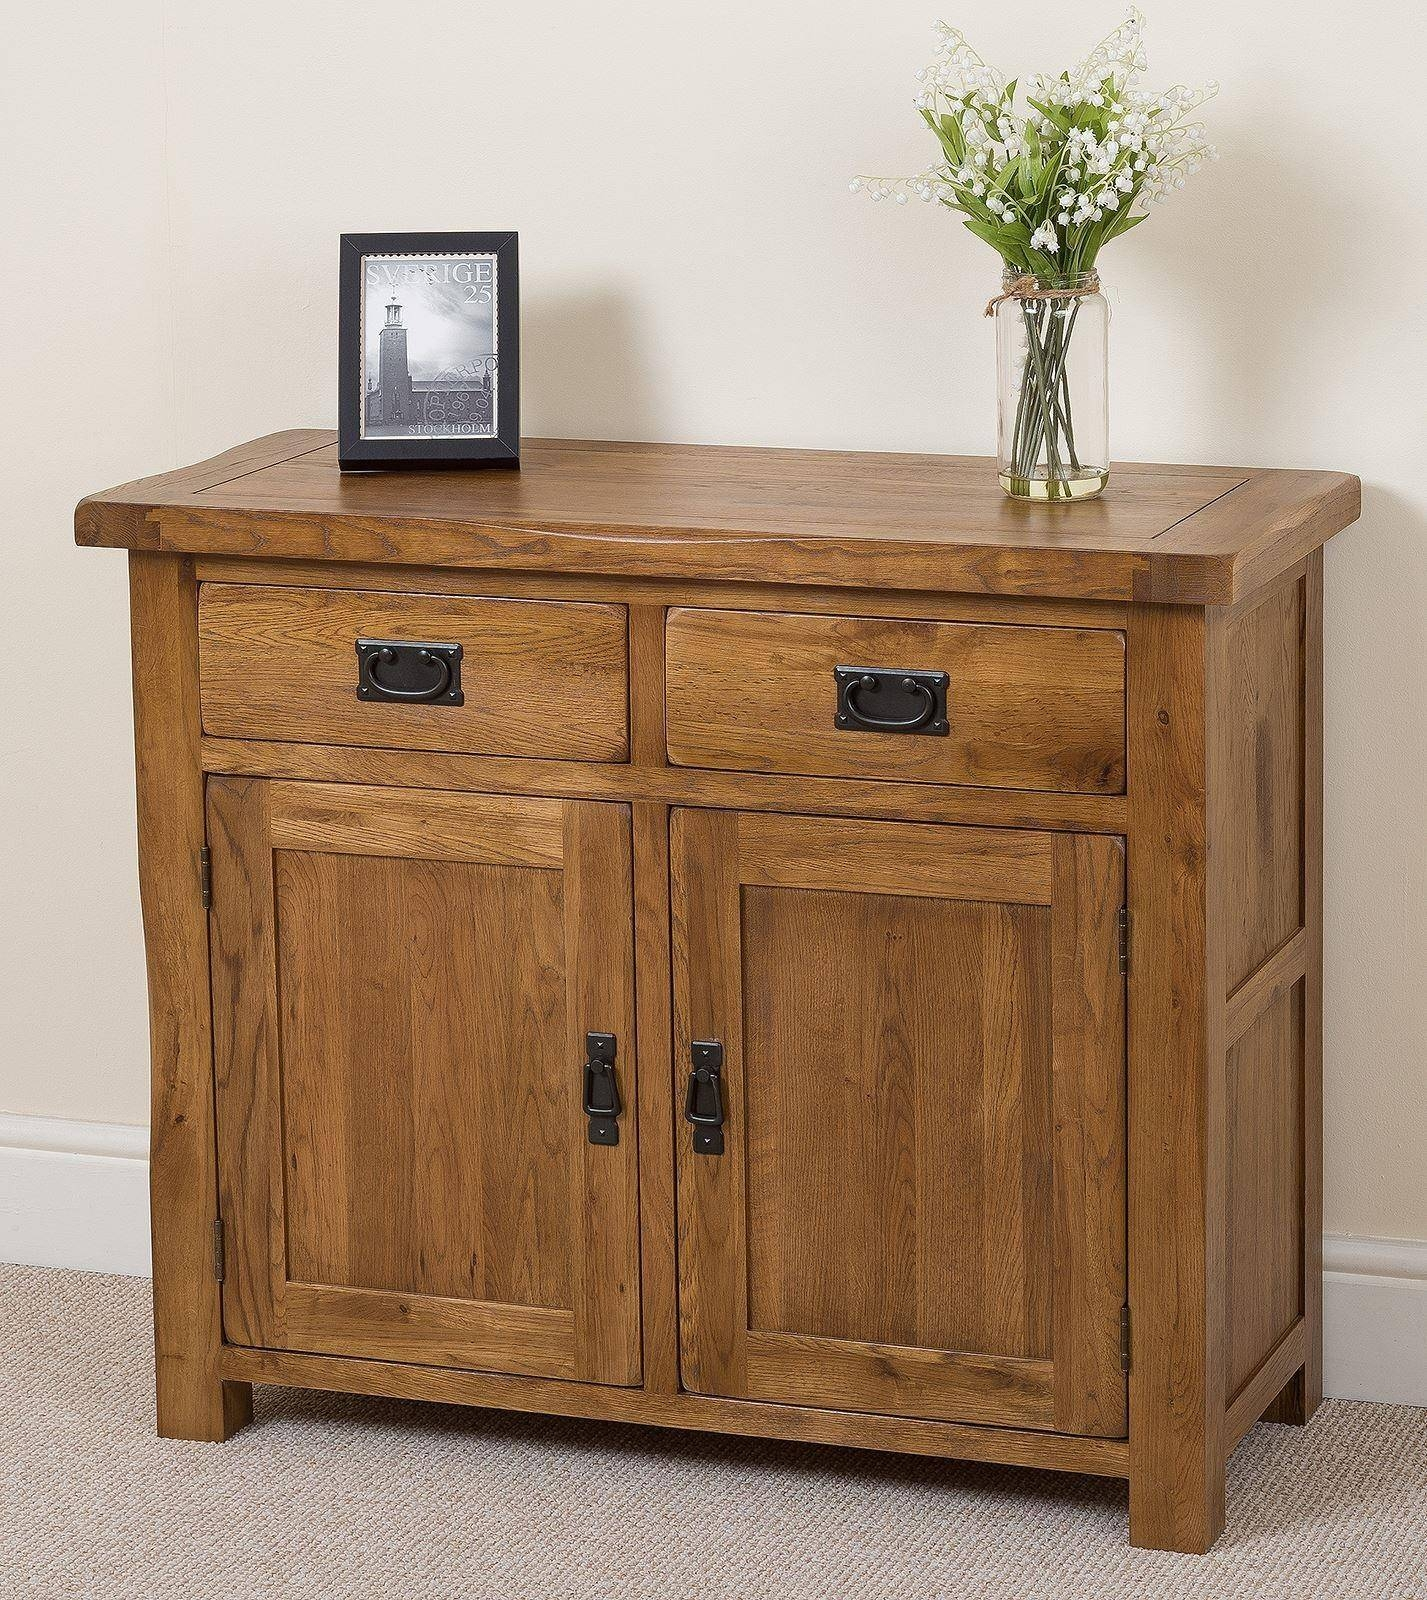 Cotswold Rustic Small Oak Sideboard | Free Uk Delivery throughout Solid Wood Sideboards (Image 6 of 15)